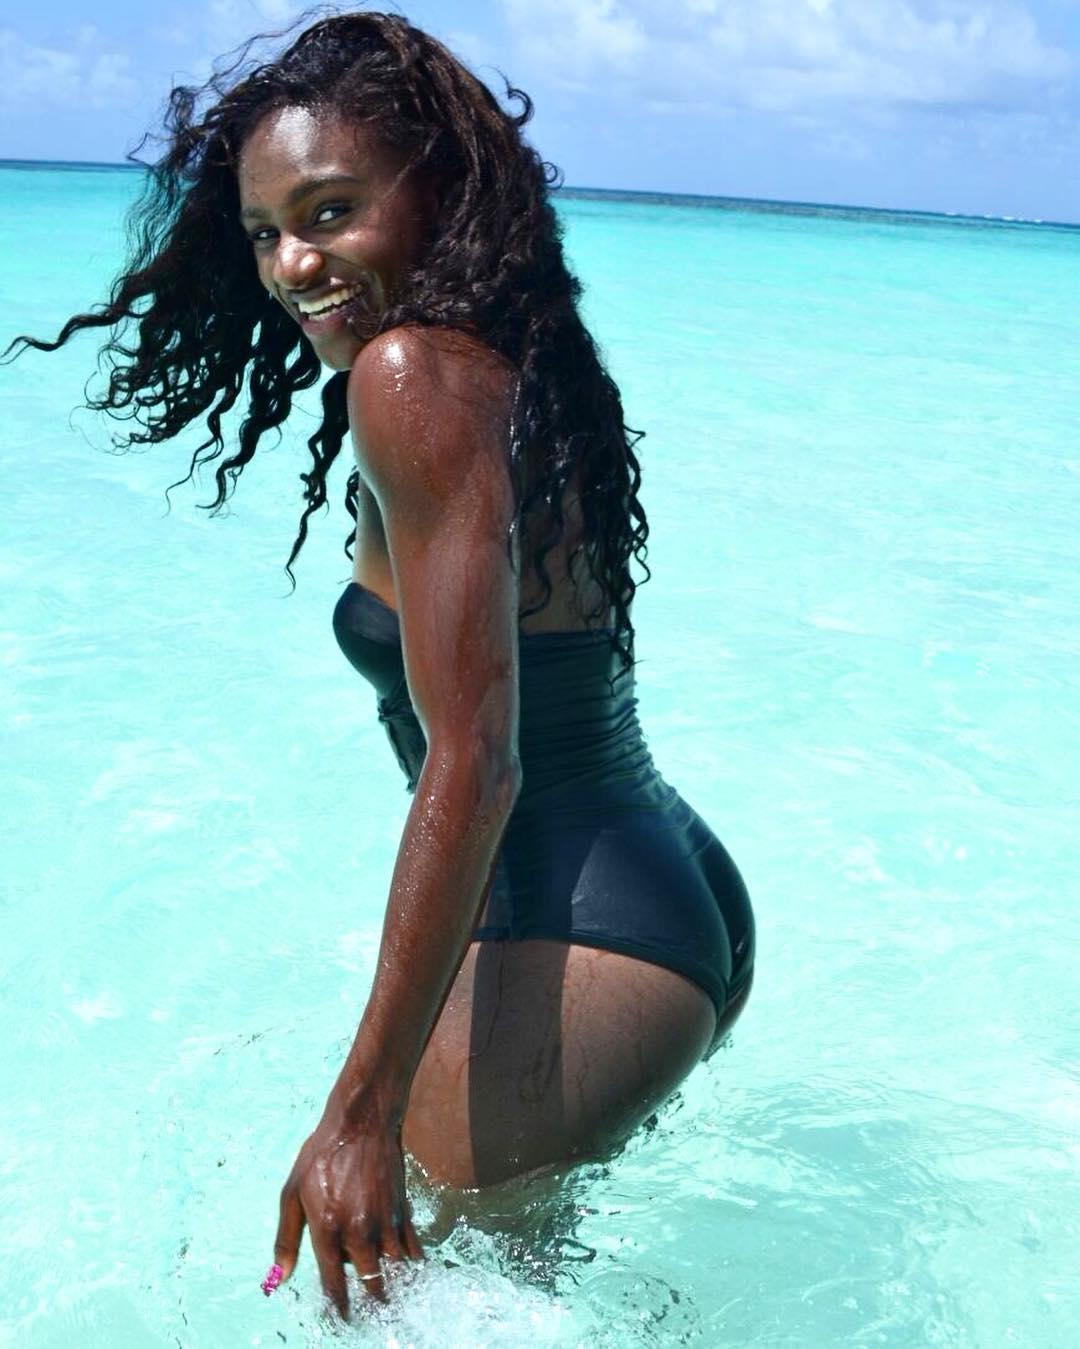 Asher-Smith on holiday in the Caribbean